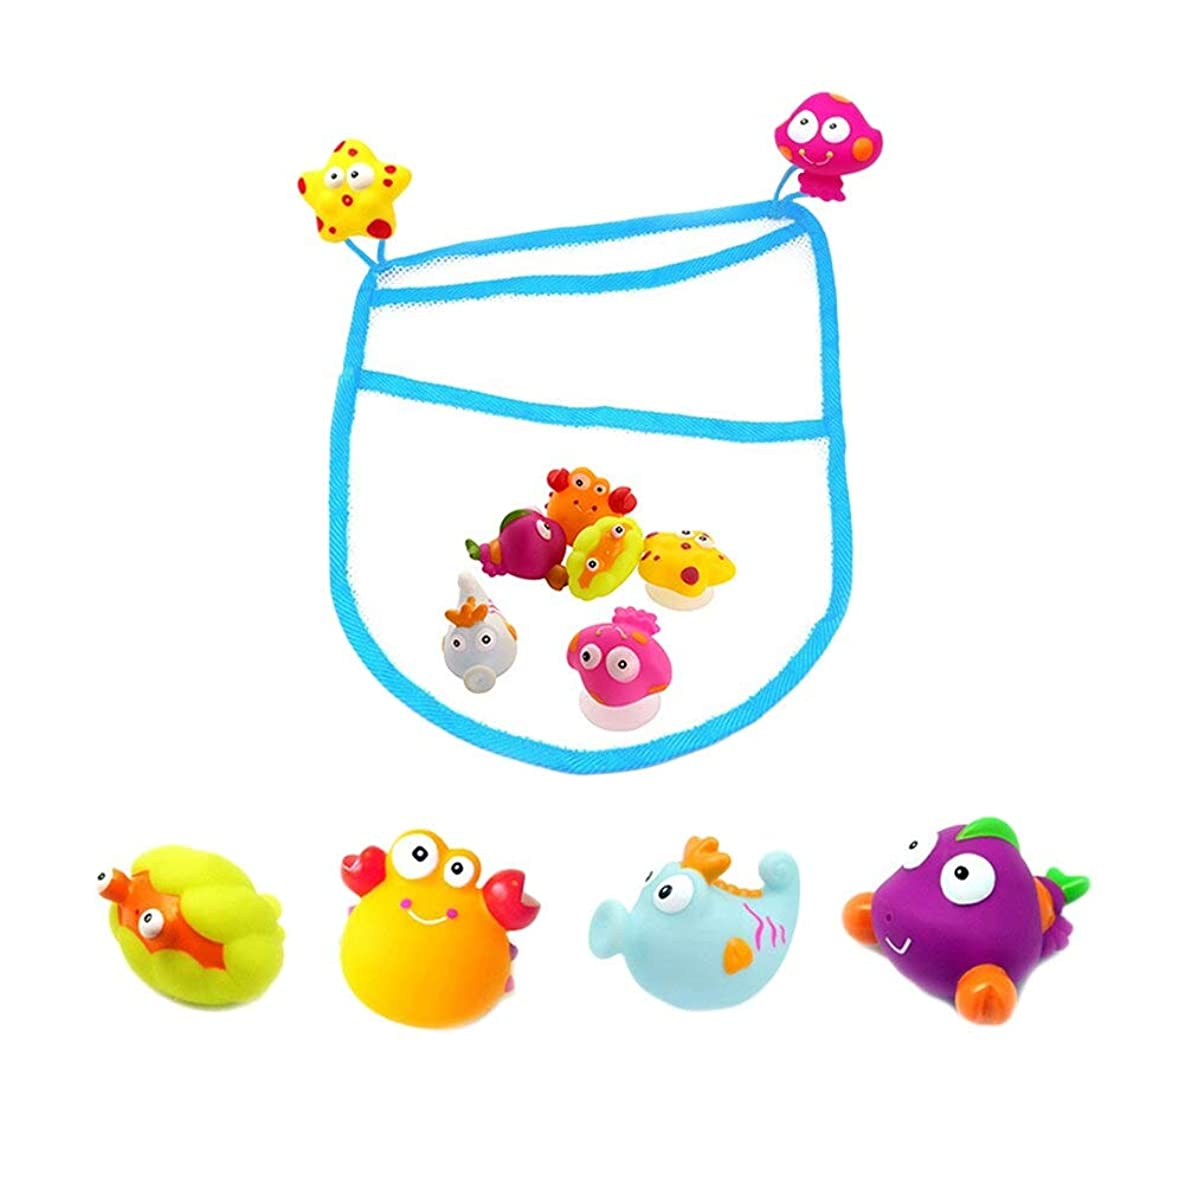 Storage Bags - 6pcs Baby Fishing Toys Funny Bathroom With Storage Bag Water Magnetic Toy Pool Kid Pretend Play - Packing Bulk Tree Dress Decorative Giant Vacuum Disposable Lego Clothes Co